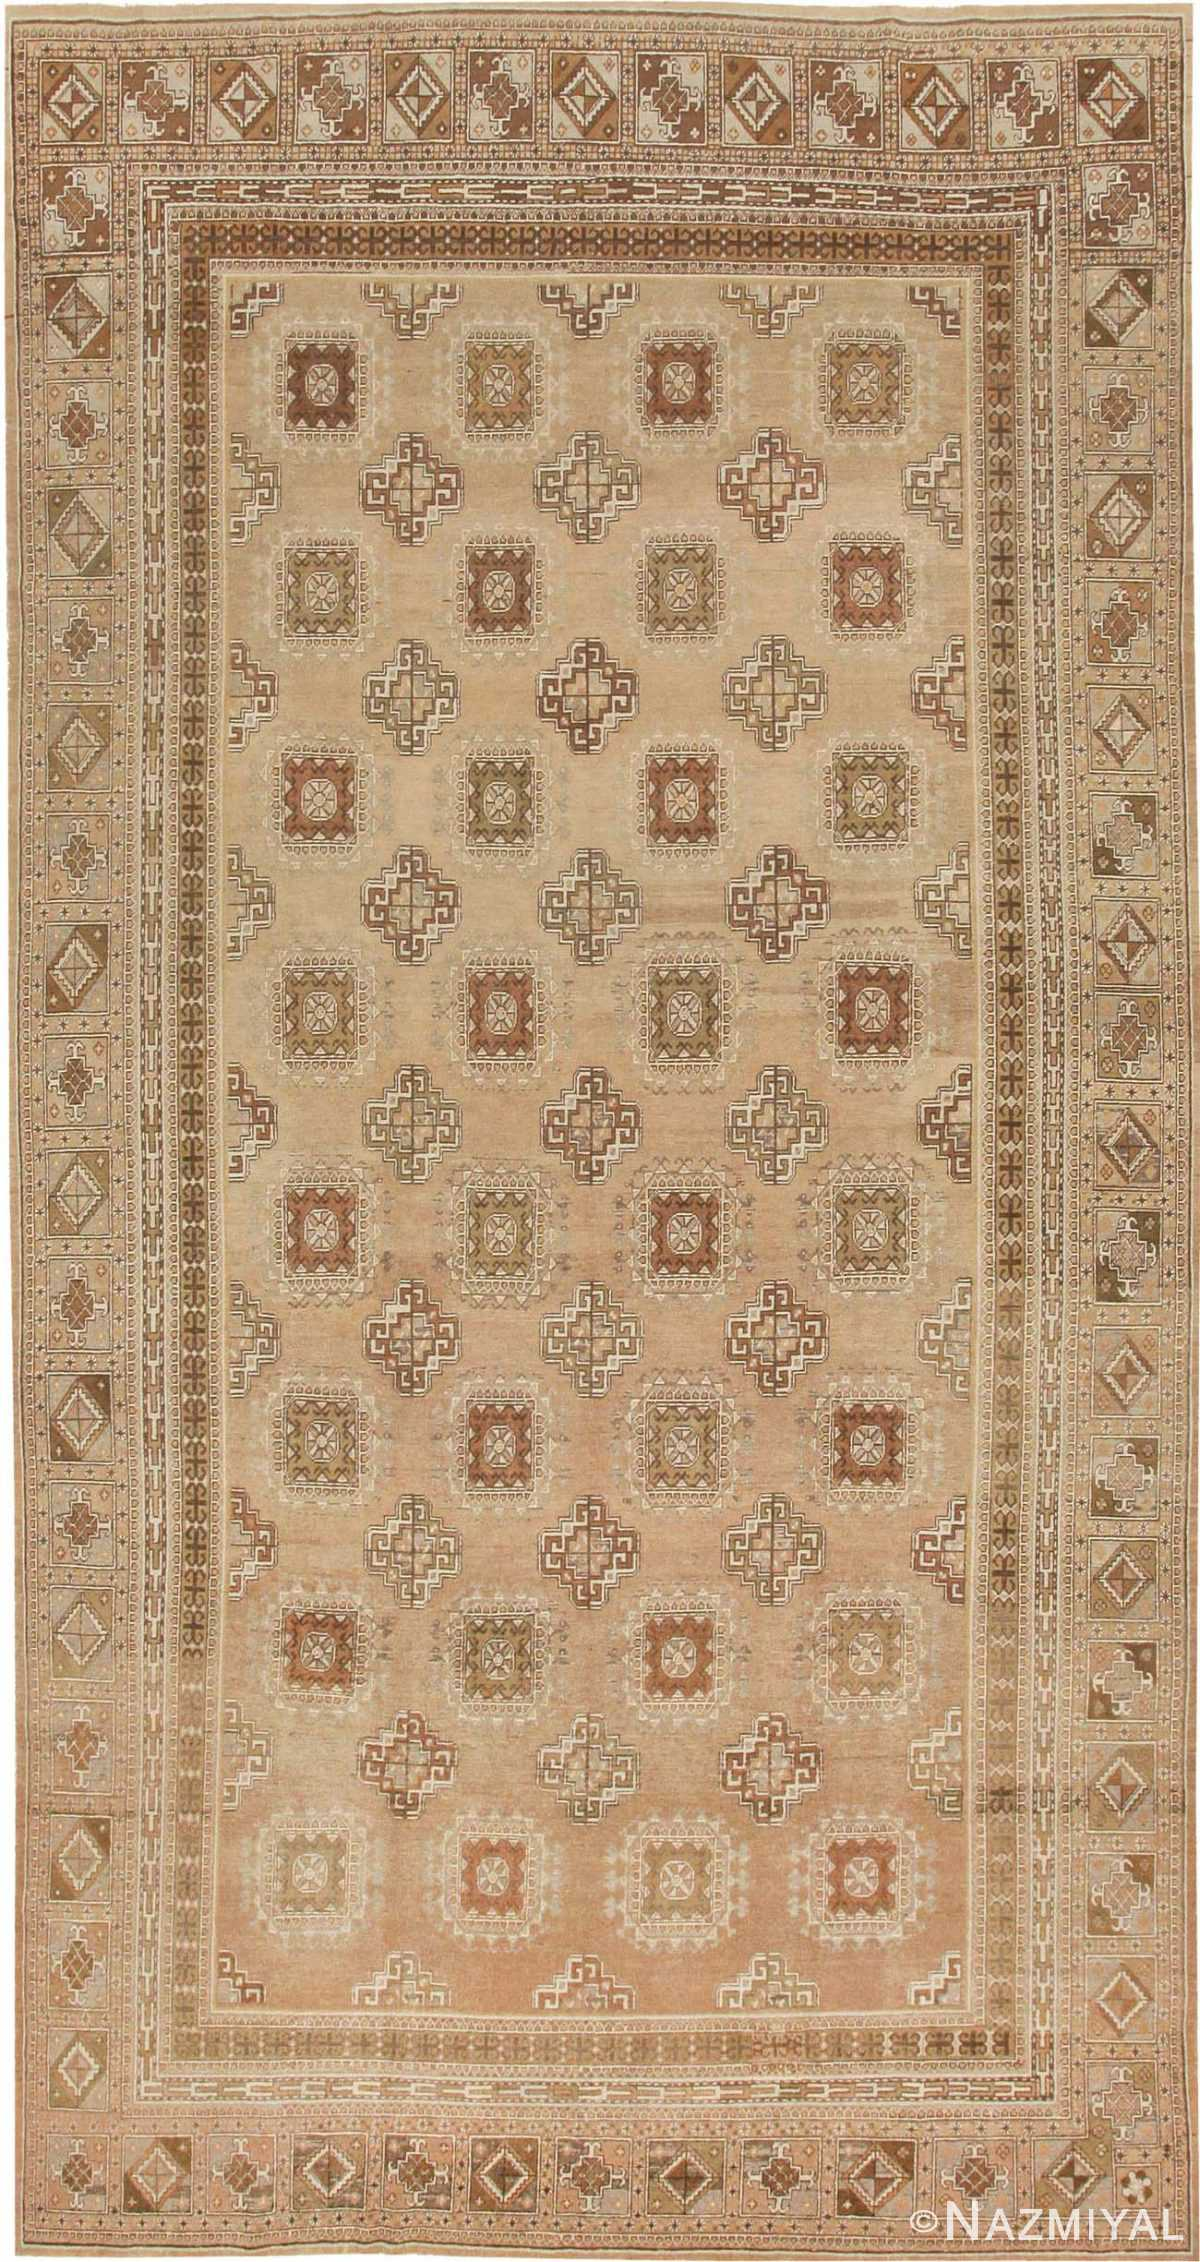 Antique Khotan Oriental Carpet 41699 Nazmiyal